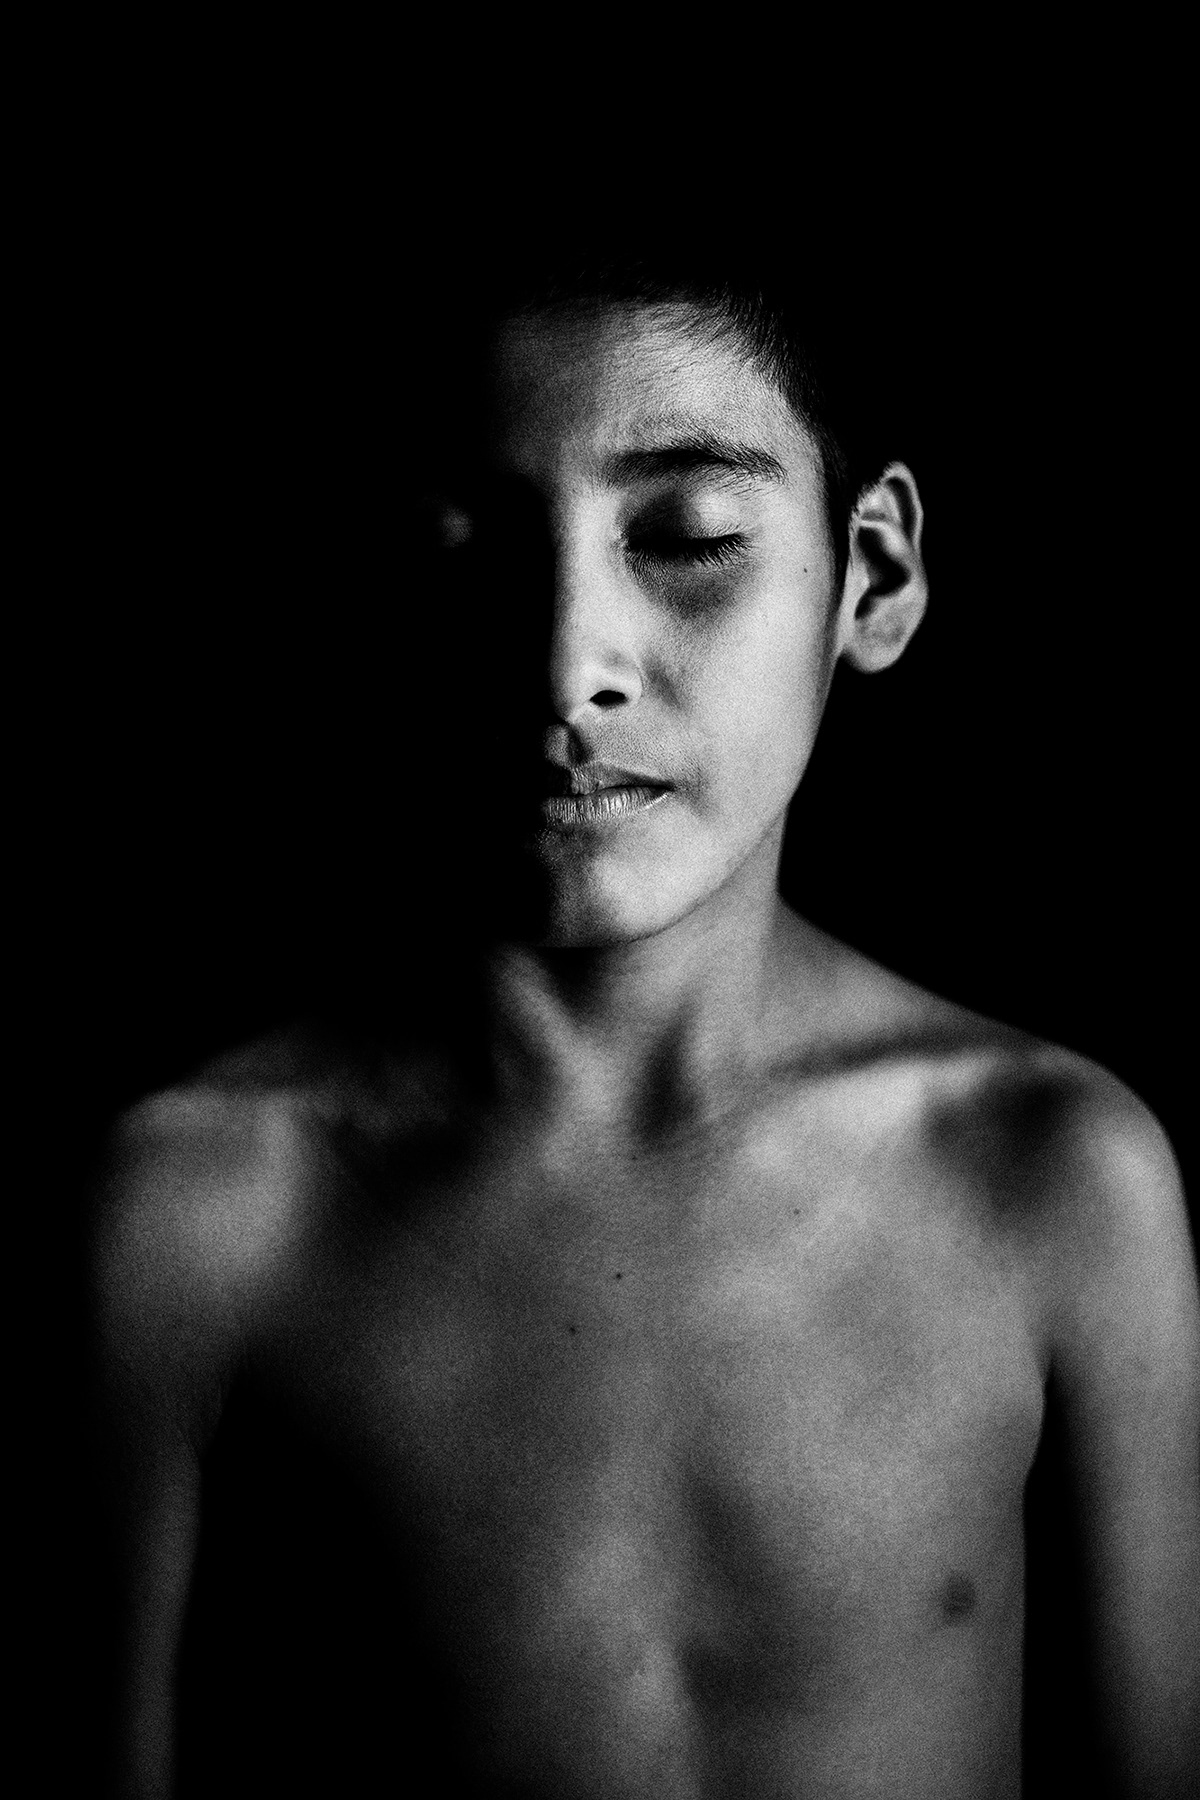 Eyes Closed Portrait of Guajajara: Black and White Portrait Photography by Jean Tran and Élysée Lang